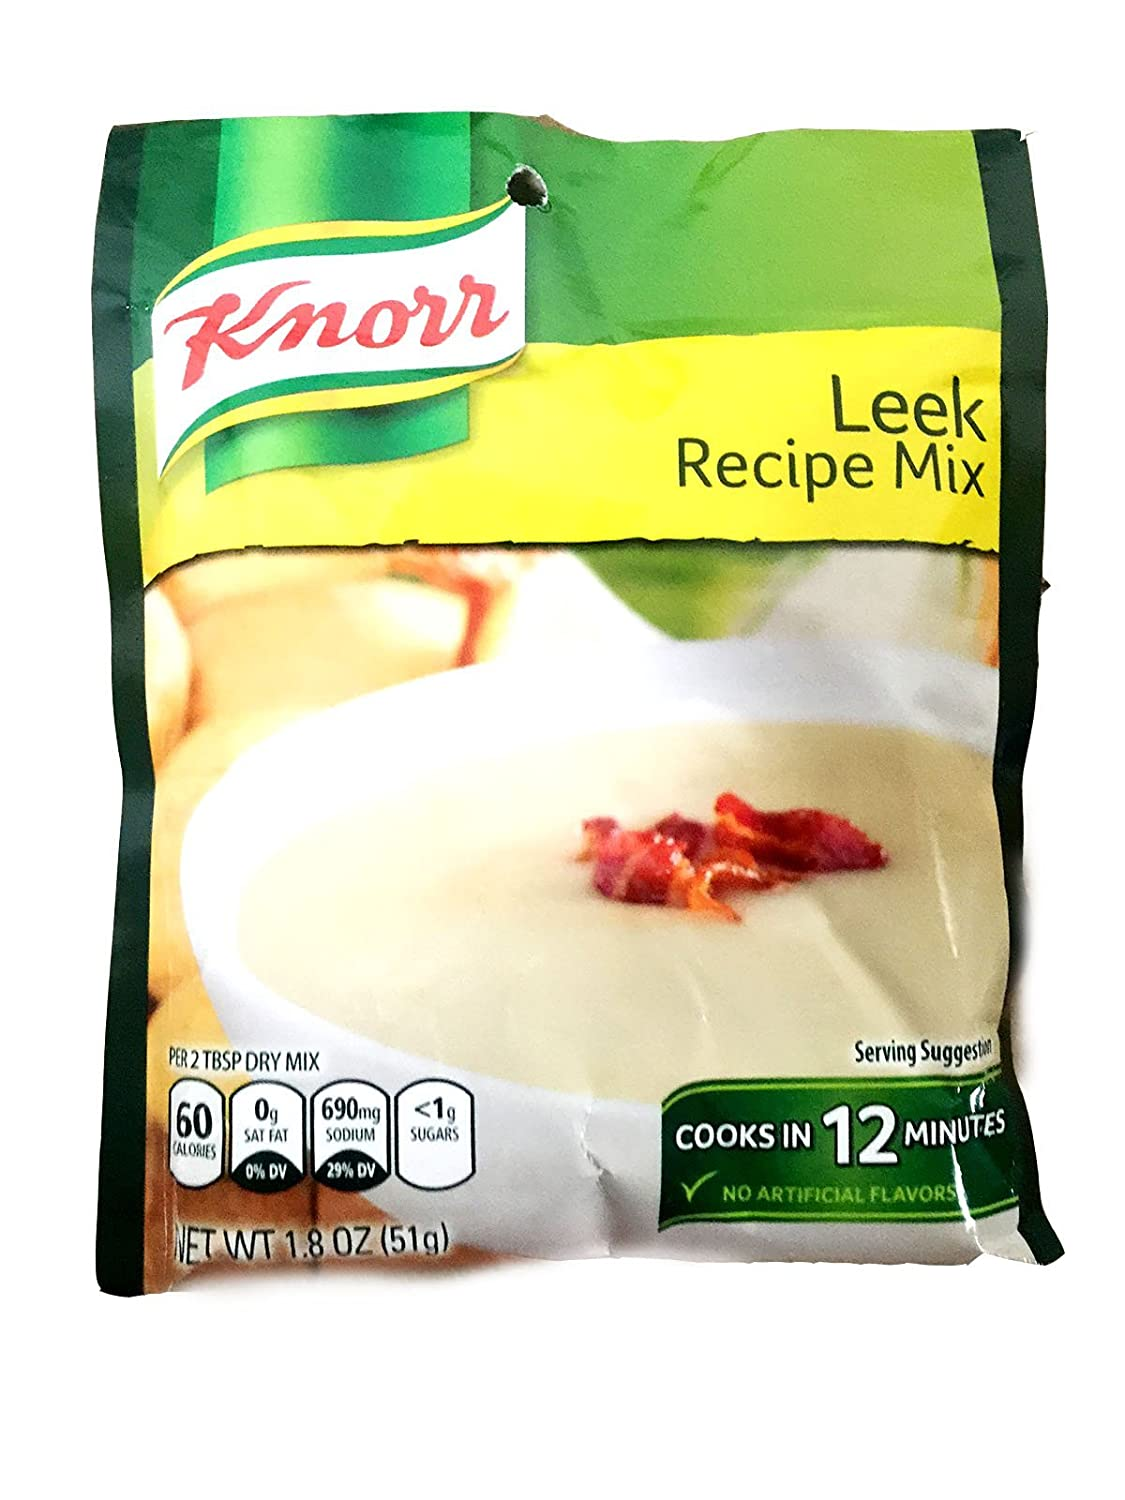 Recipe Classic New arrival Soup Leek - 6 1.8oz of Super beauty product restock quality top! Pack